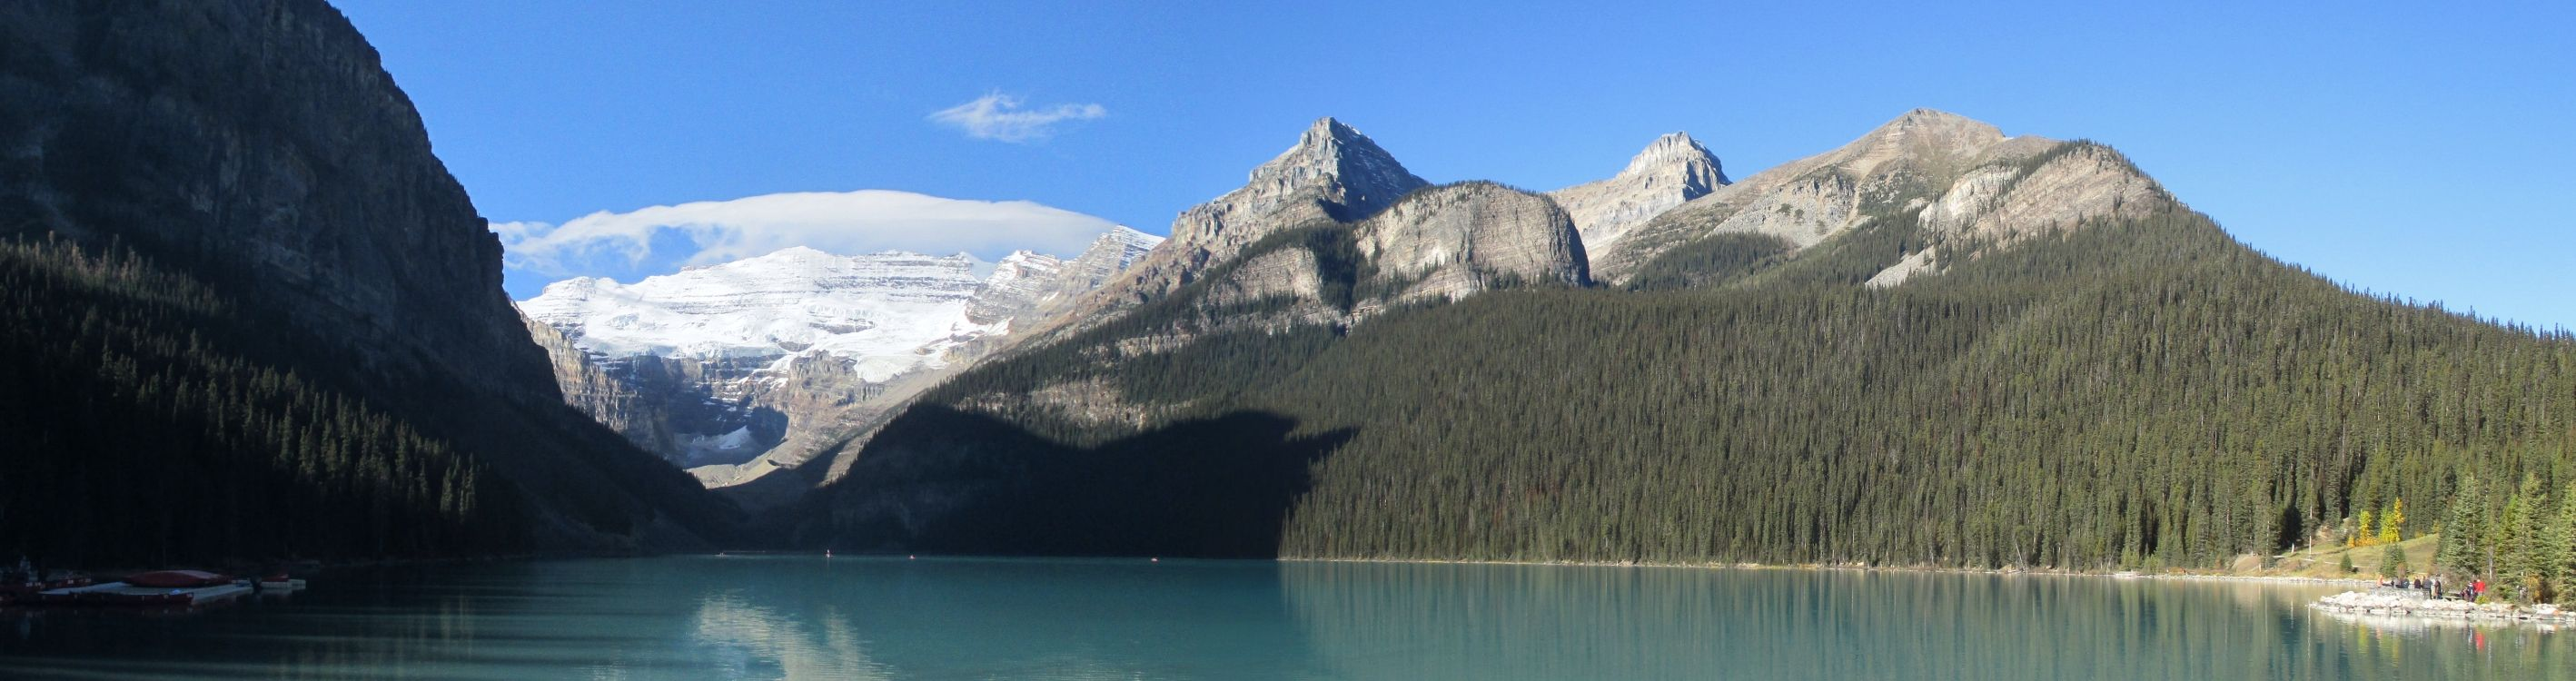 Lake Louise und der Big Beehive.